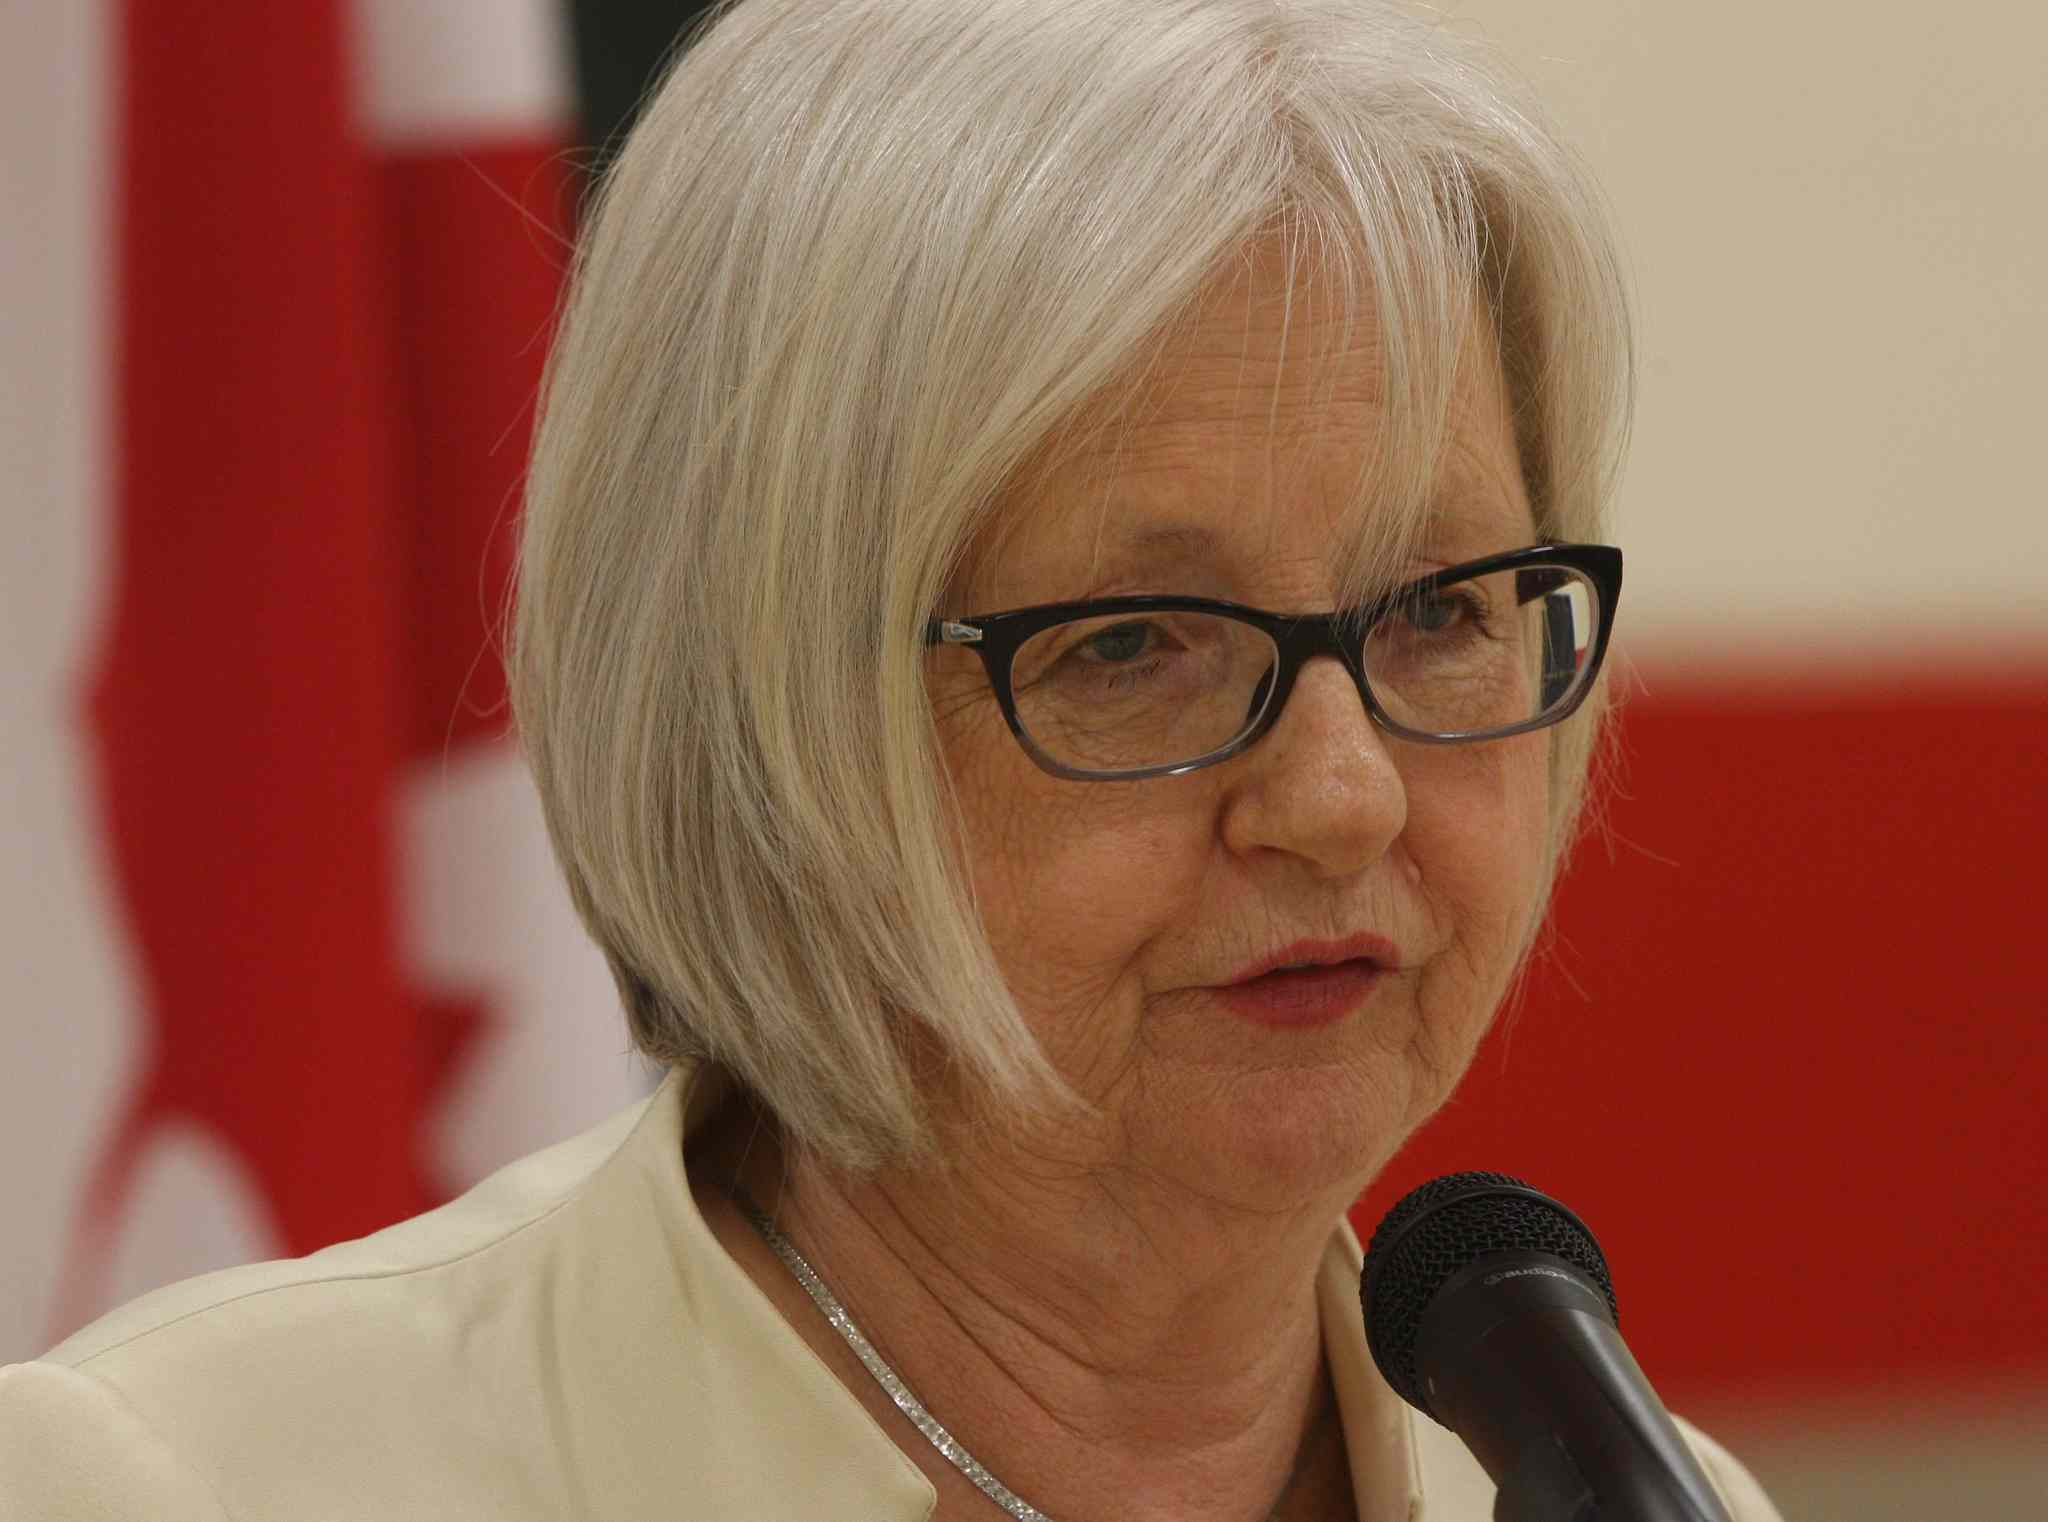 MP Joy Smith announced $7.5 million in funding today towards a UNICEF health education initiative.